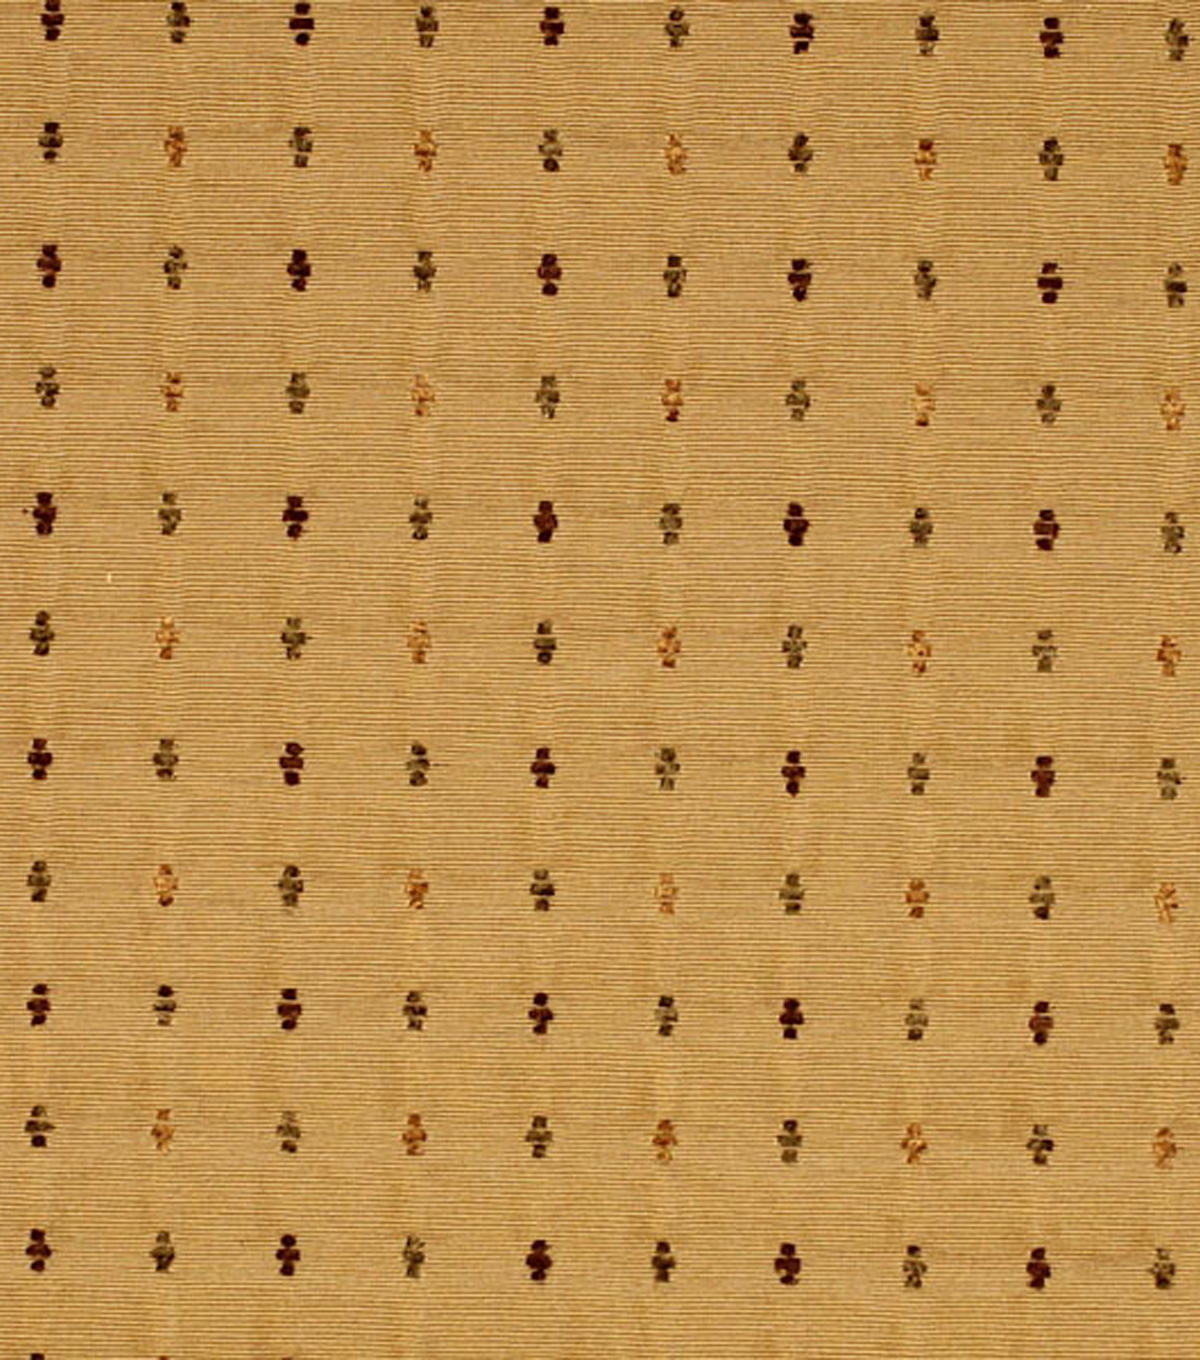 Home Decor 8\u0022x8\u0022 Fabric Swatch-Barrow M8371-5184 Topaz